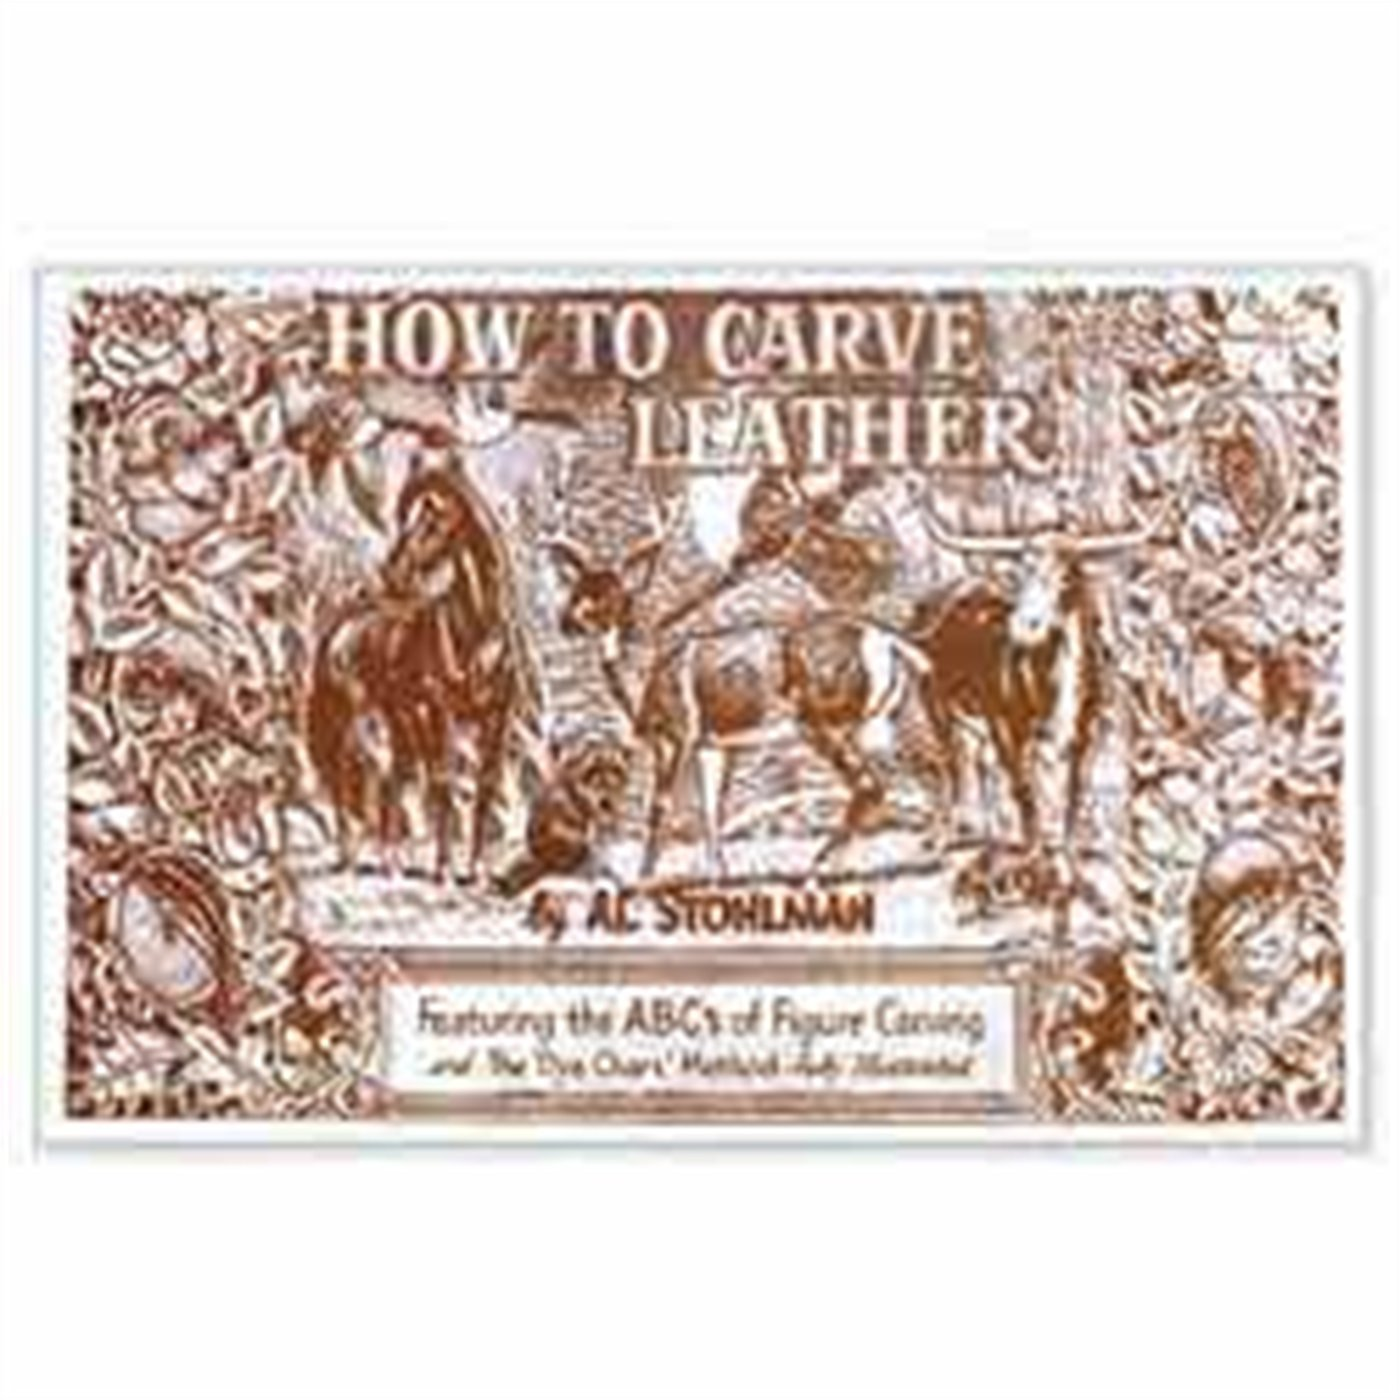 How Carve Leather Al Stohlman product image